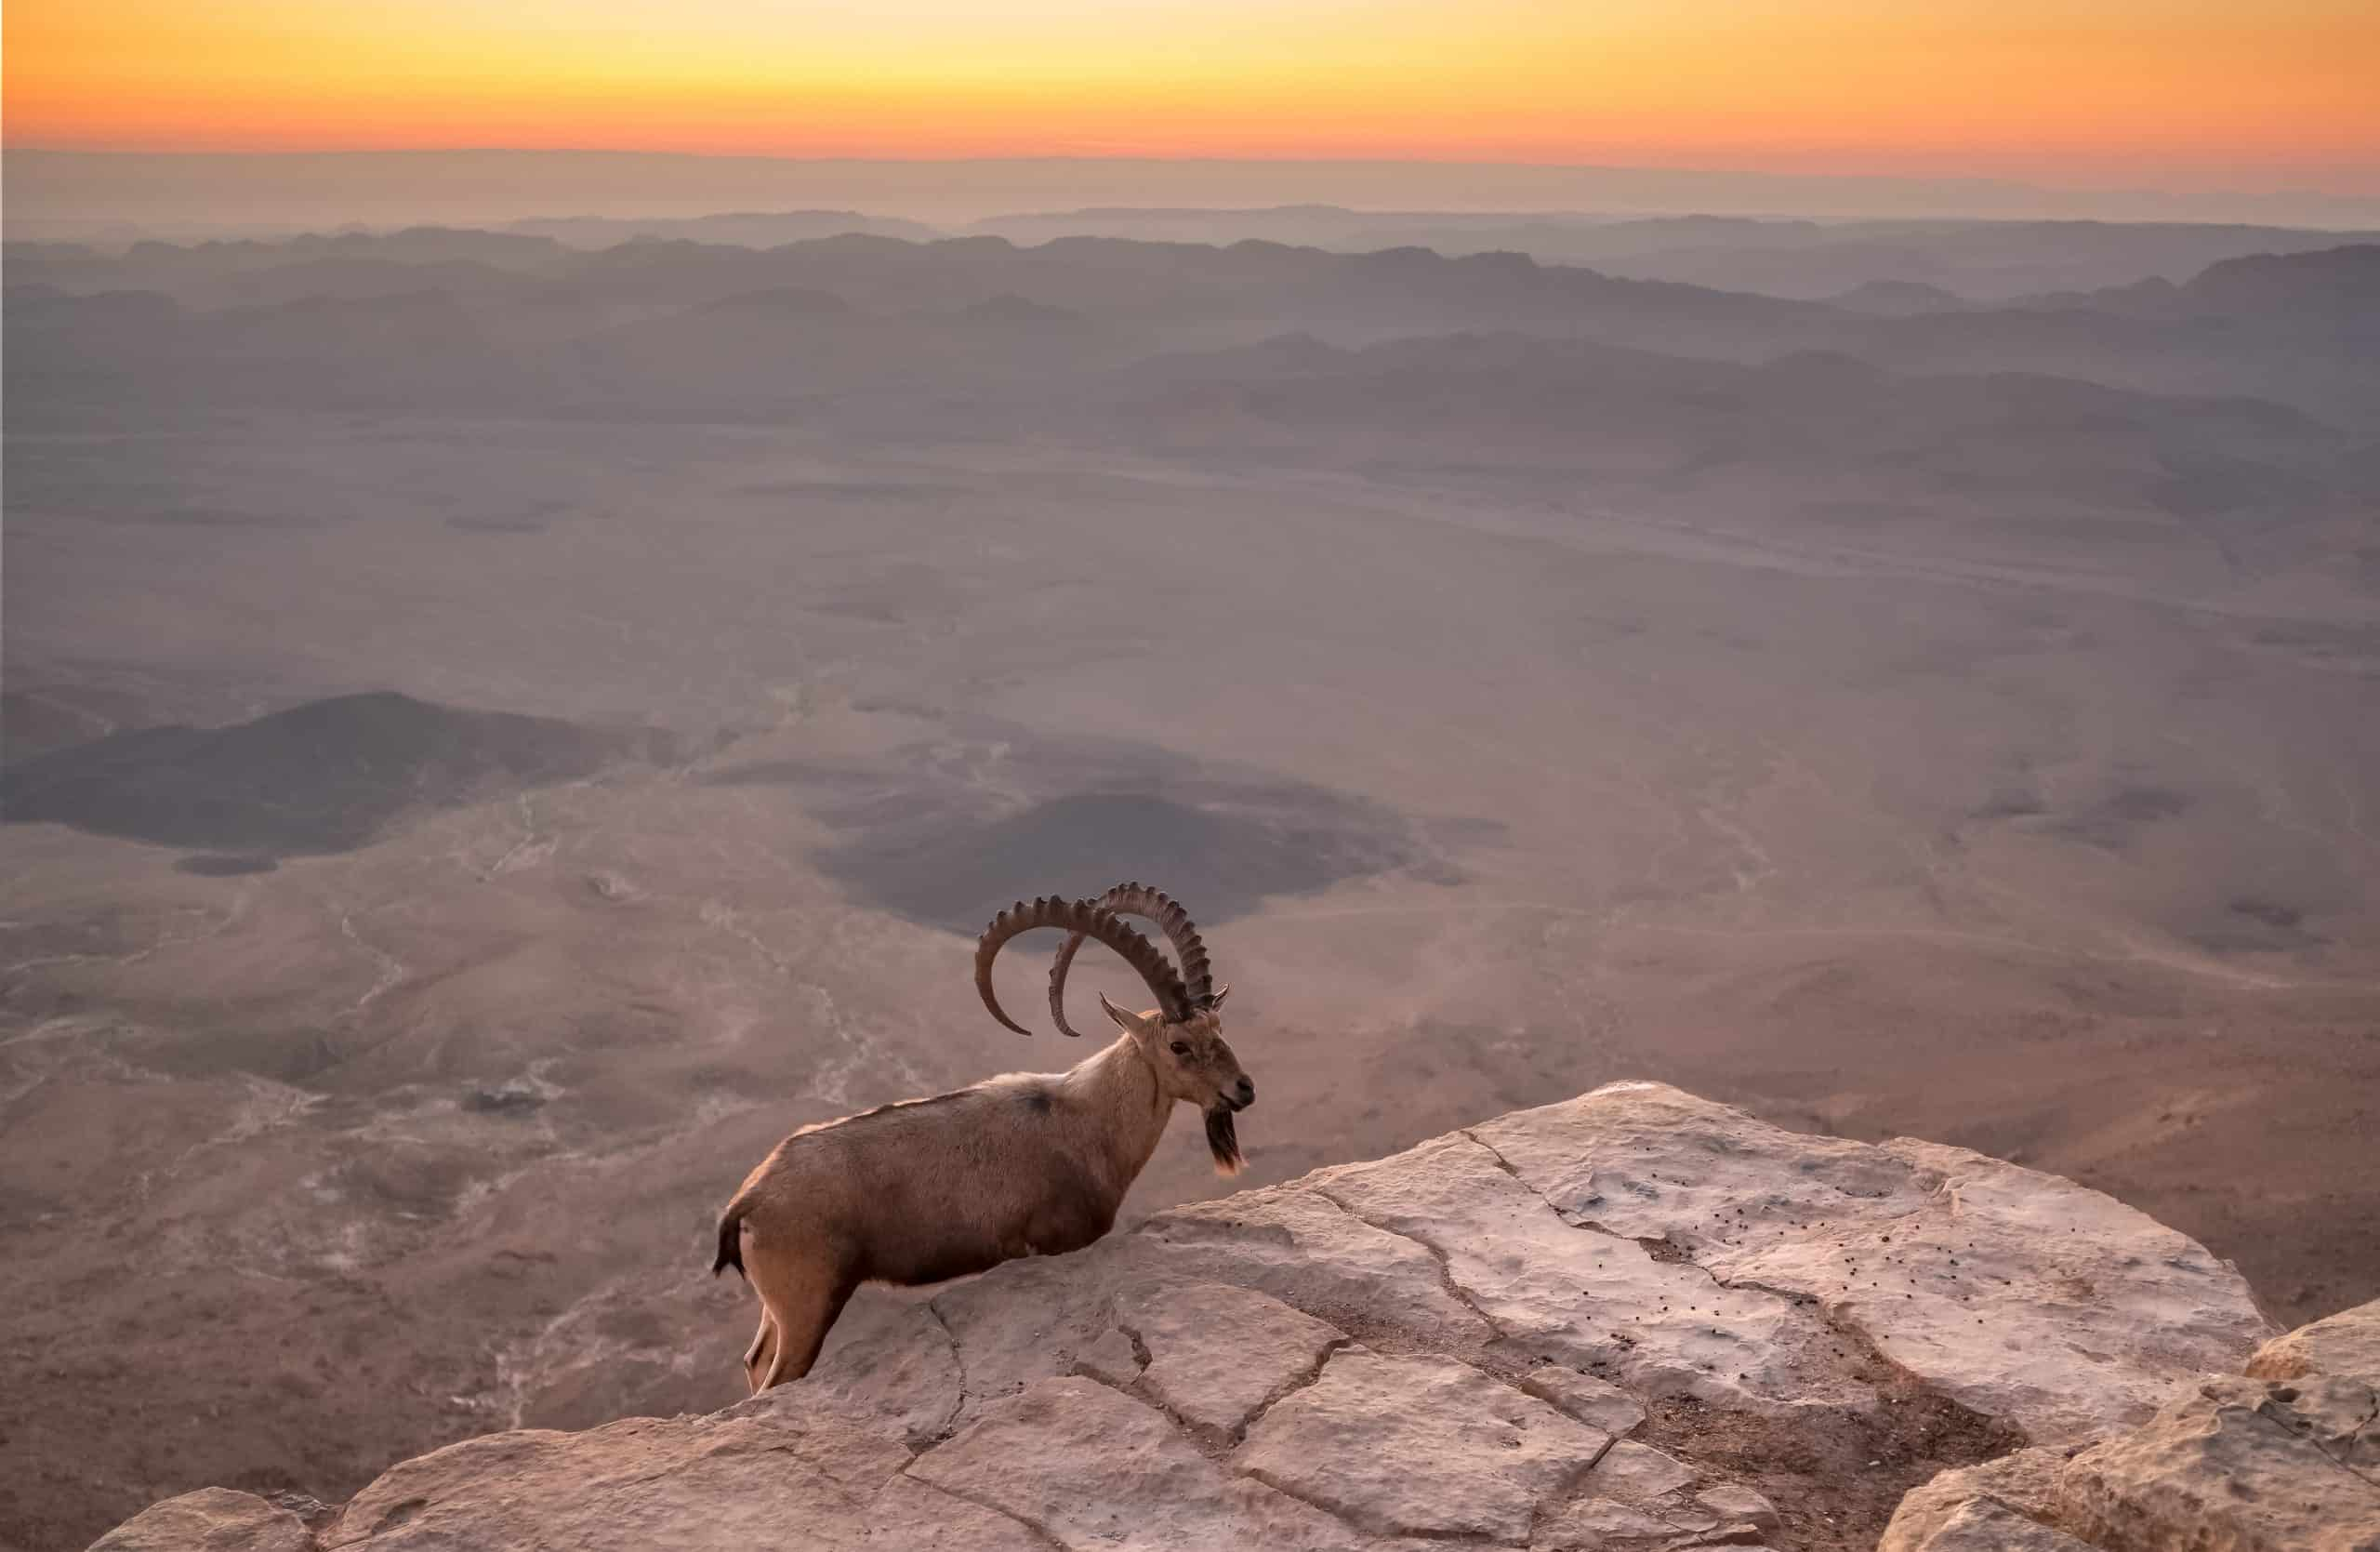 Nubian ibex on the cliff at Ramon Crater at sunrise, Israel